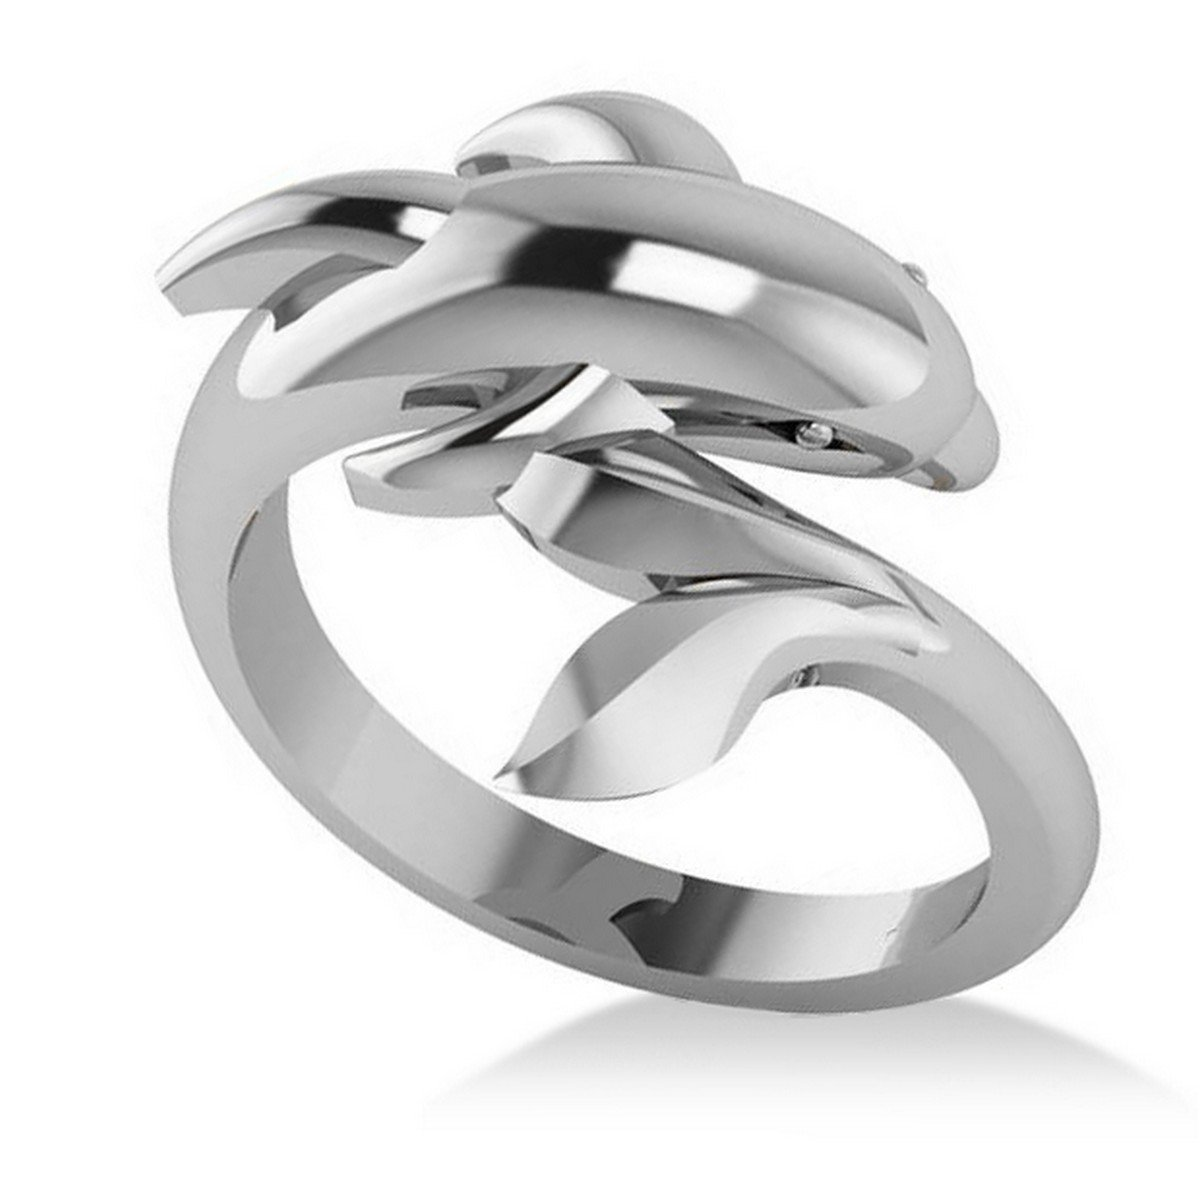 Allurez Summertime Dolphin Fashion Ring 14k White Gold